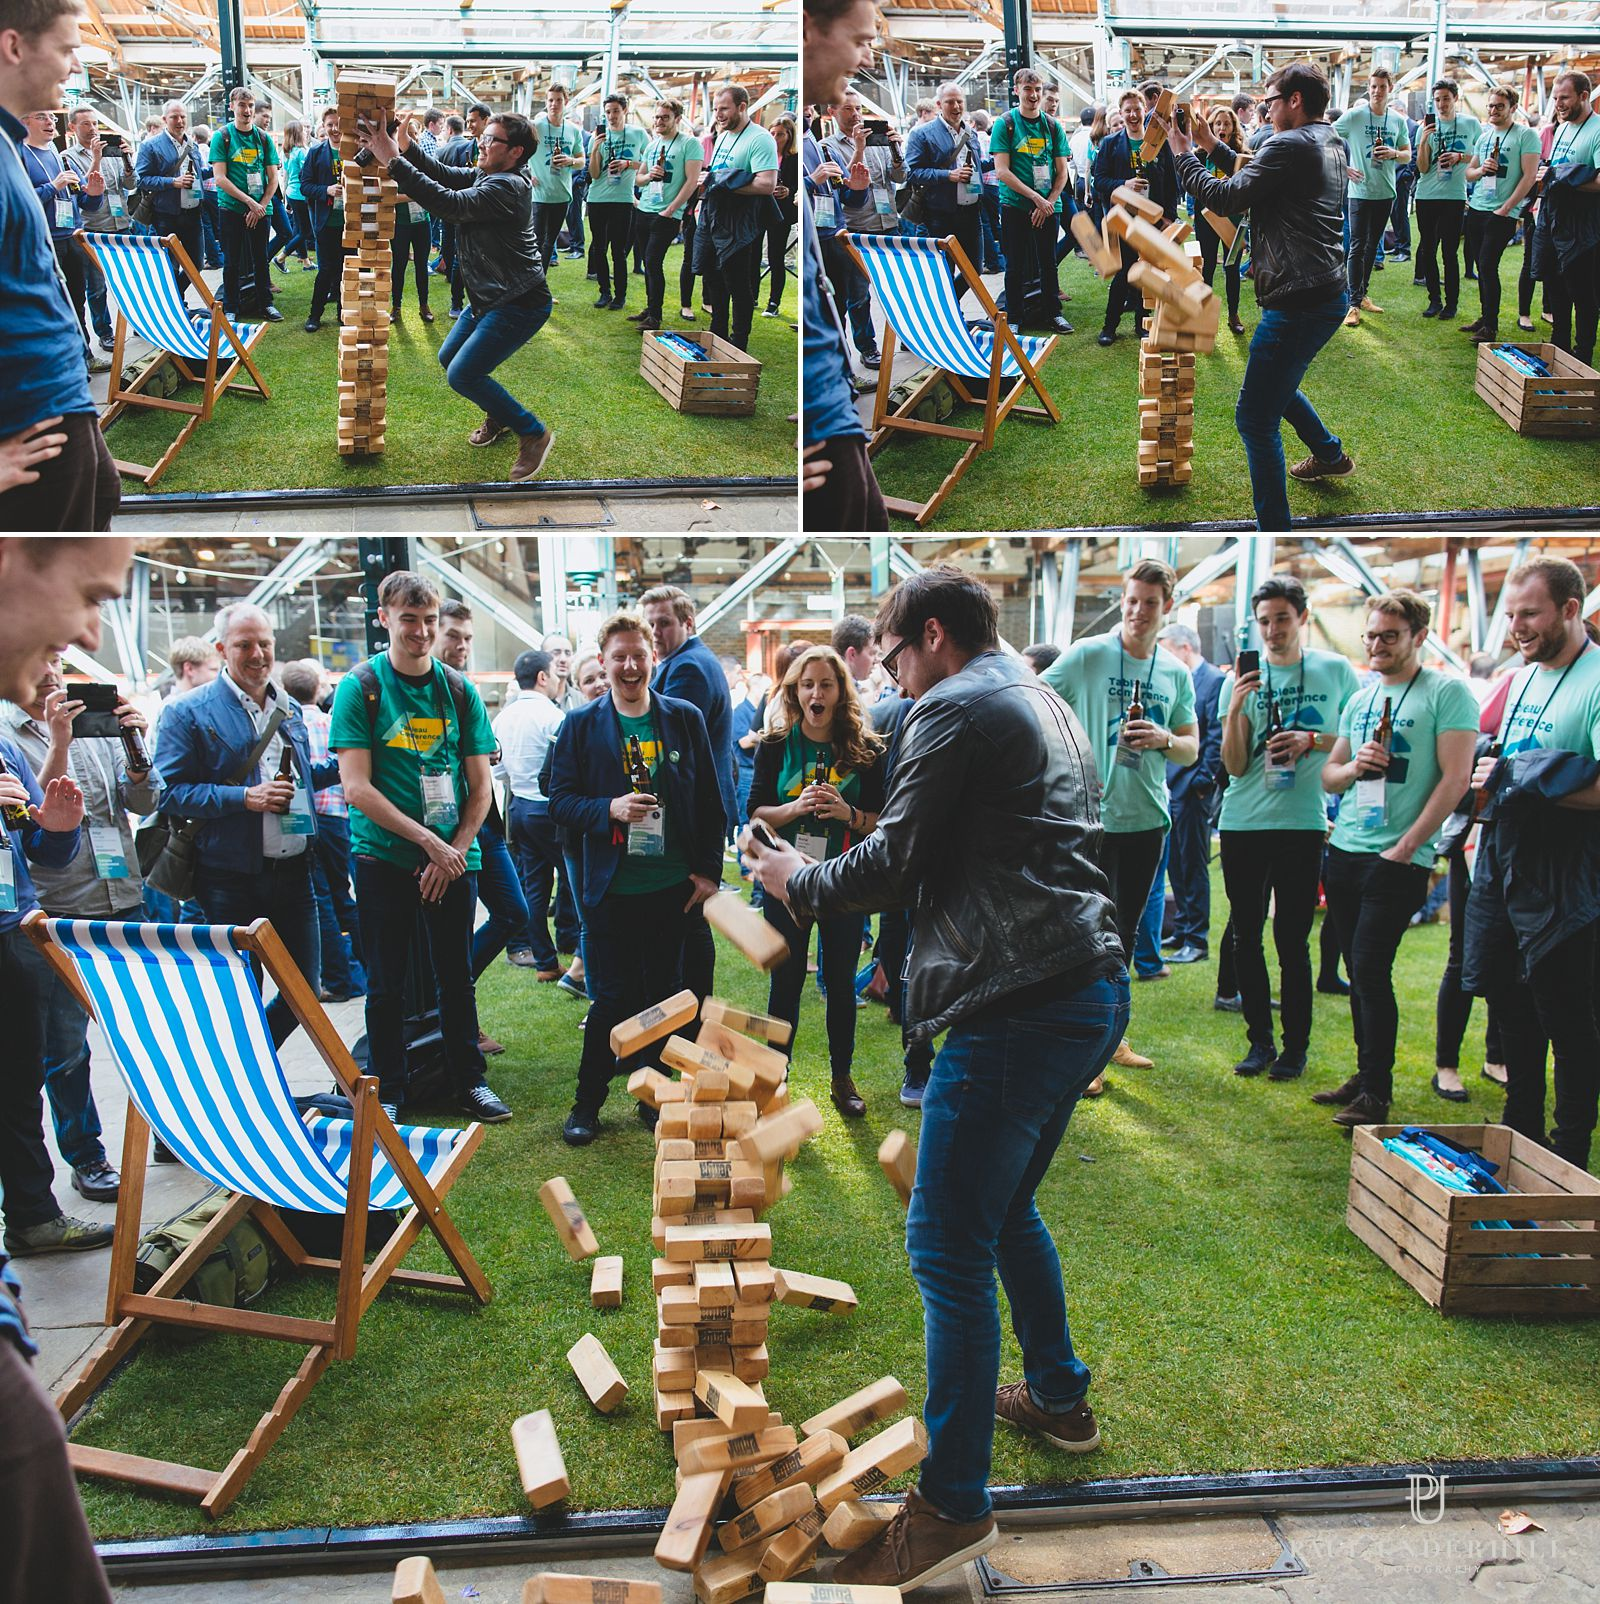 Giant jenga game at London conference